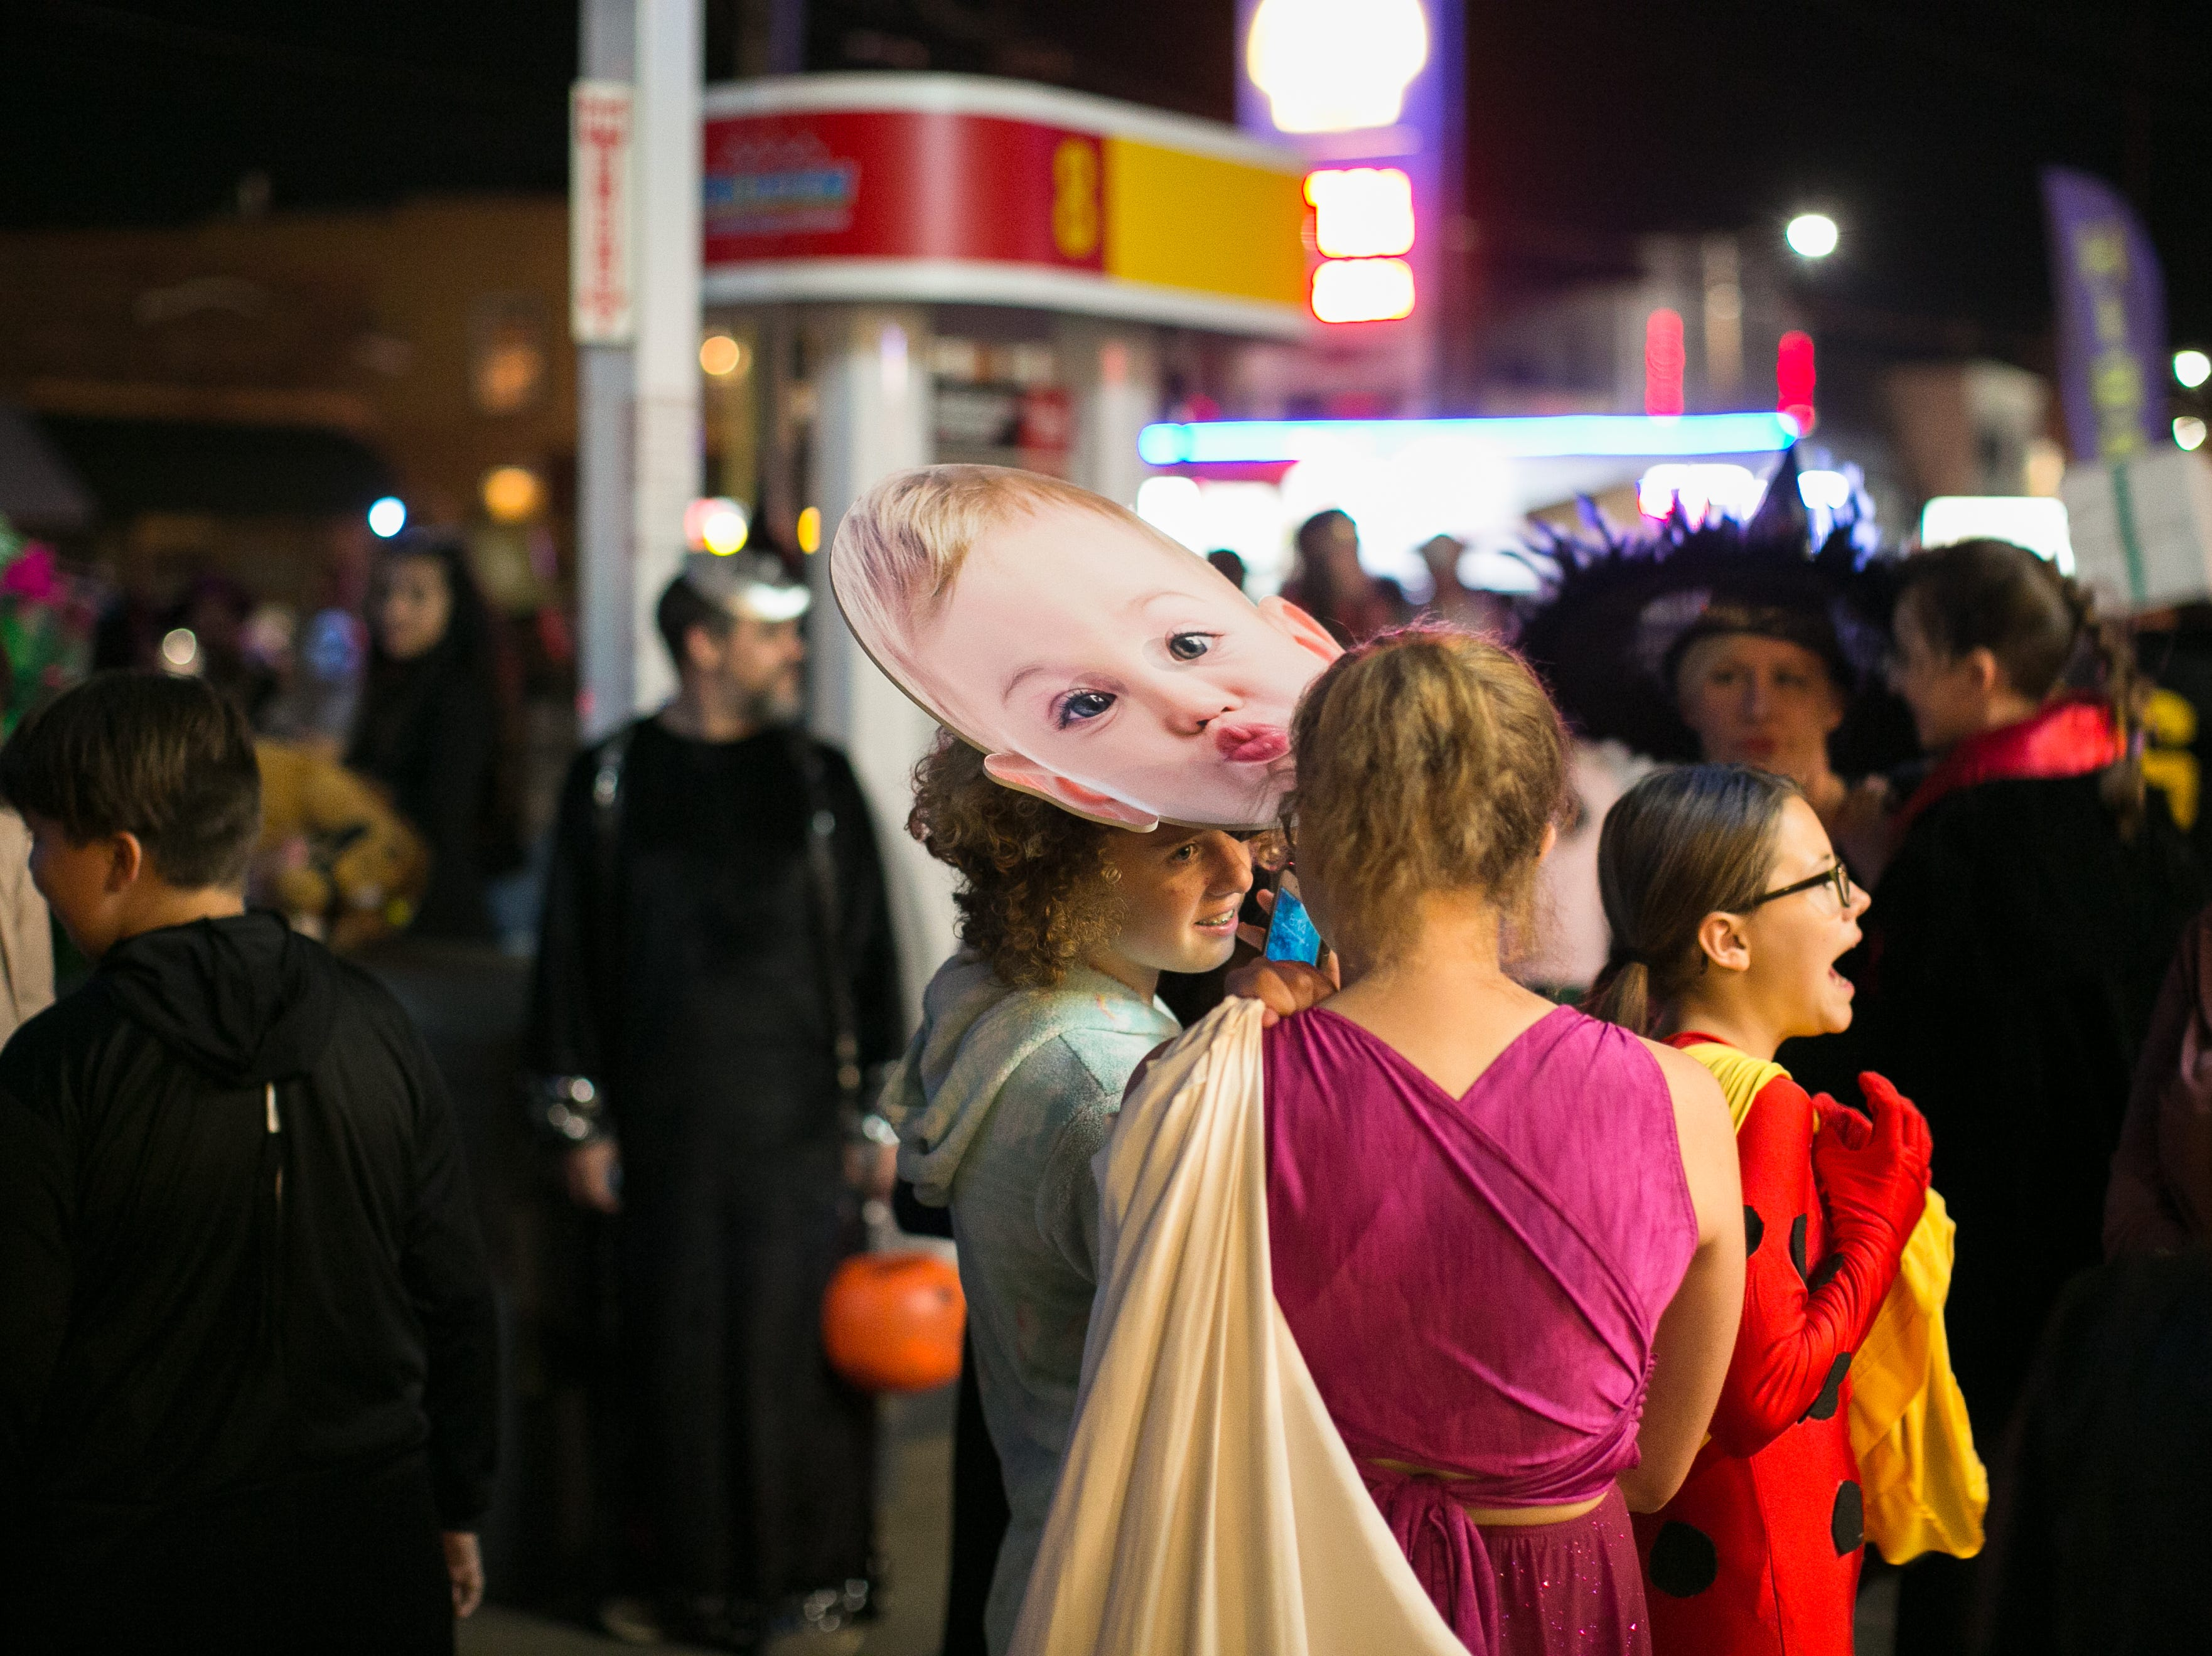 Adults and kids alike celebrated Halloween at West Asheville's Brew Pump on Oct. 31, 2018.